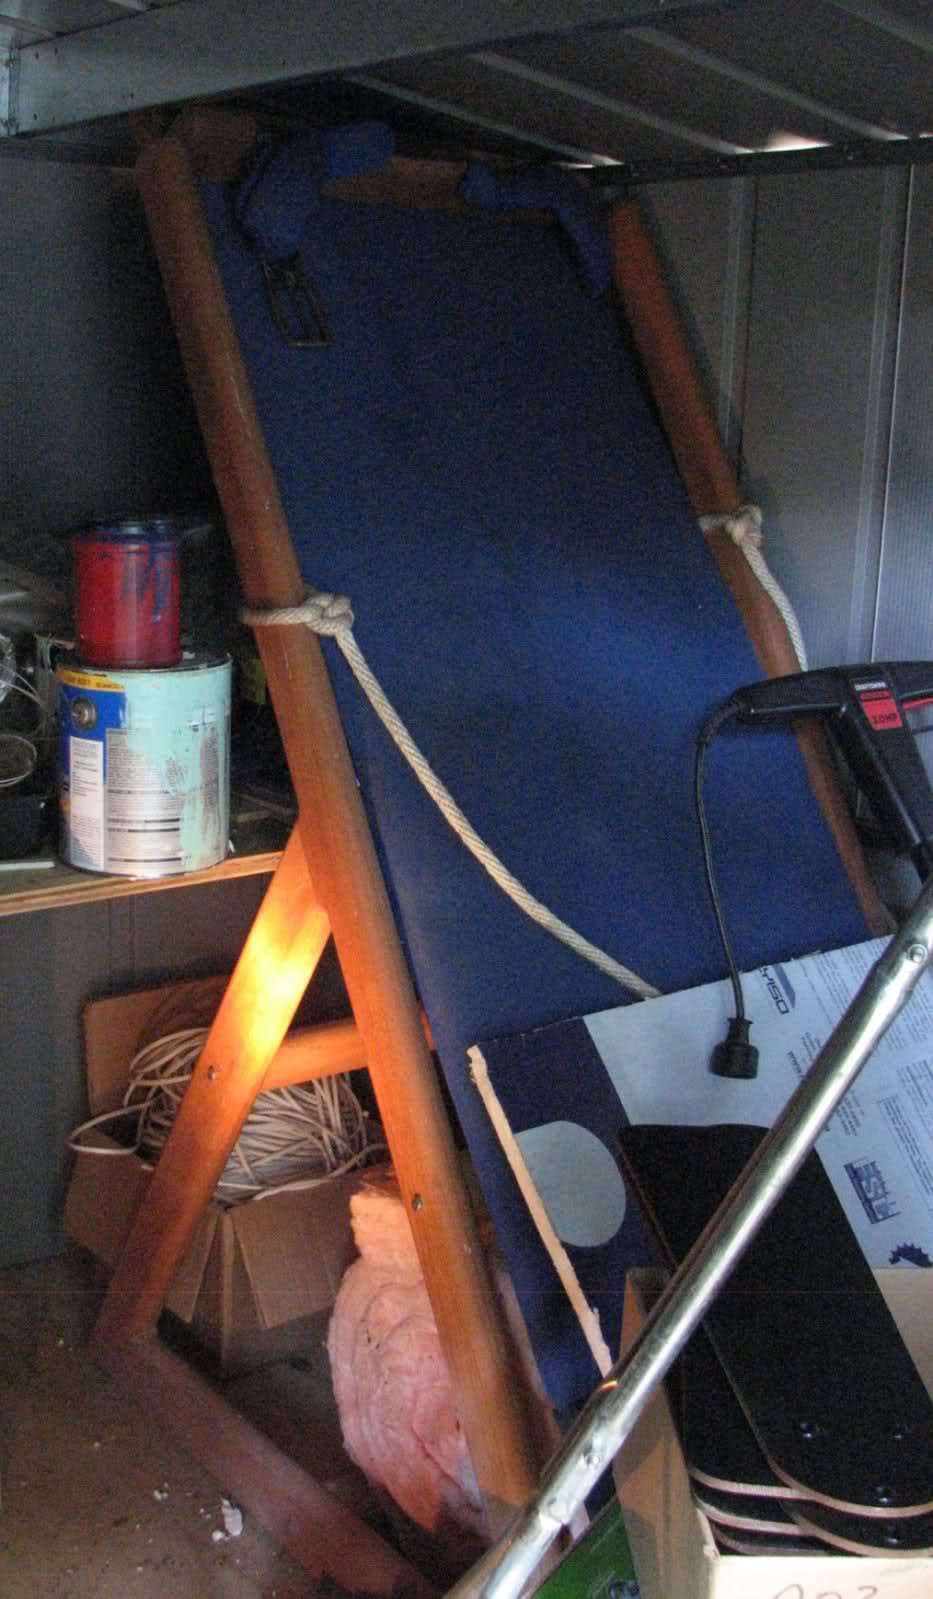 Best ideas about DIY Inversion Table Plans . Save or Pin Inversion table experience knowledge anyone — Polk Audio Now.